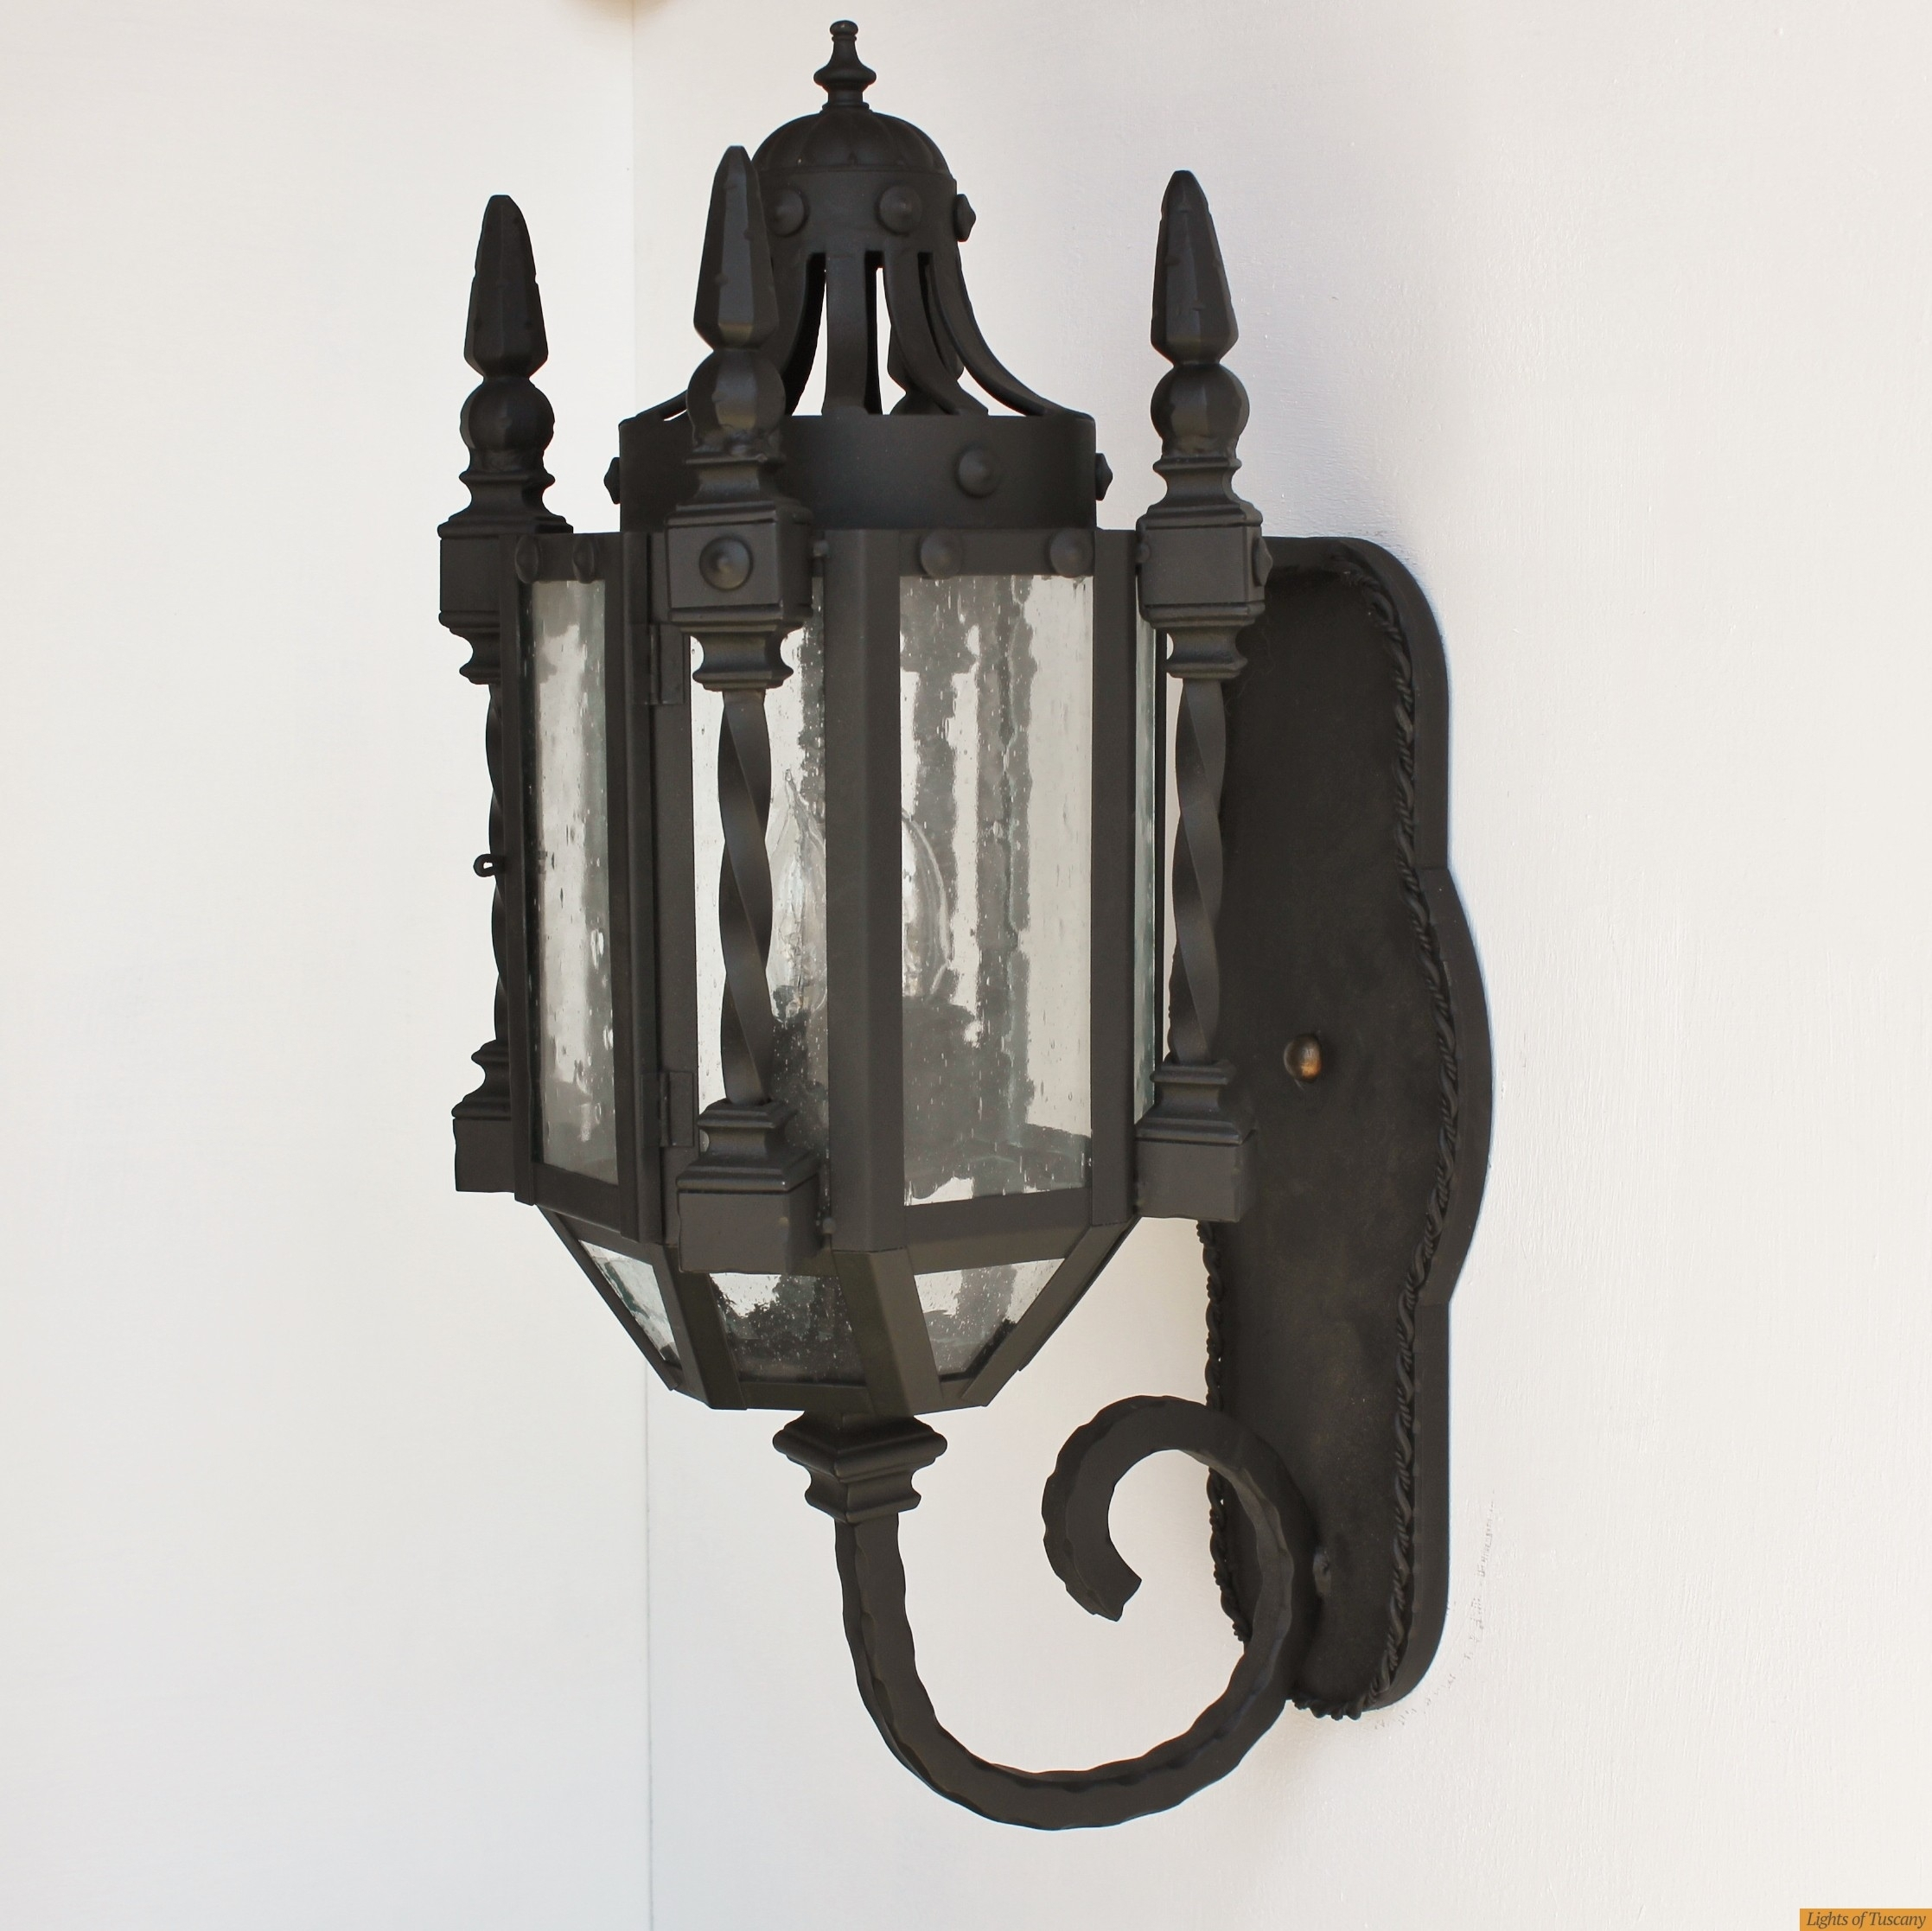 Lights Of Tuscany 7046 3 Wrought Iron Gothic/medieval Wall Lanter Intended For Gothic Outdoor Wall Lighting (View 3 of 15)